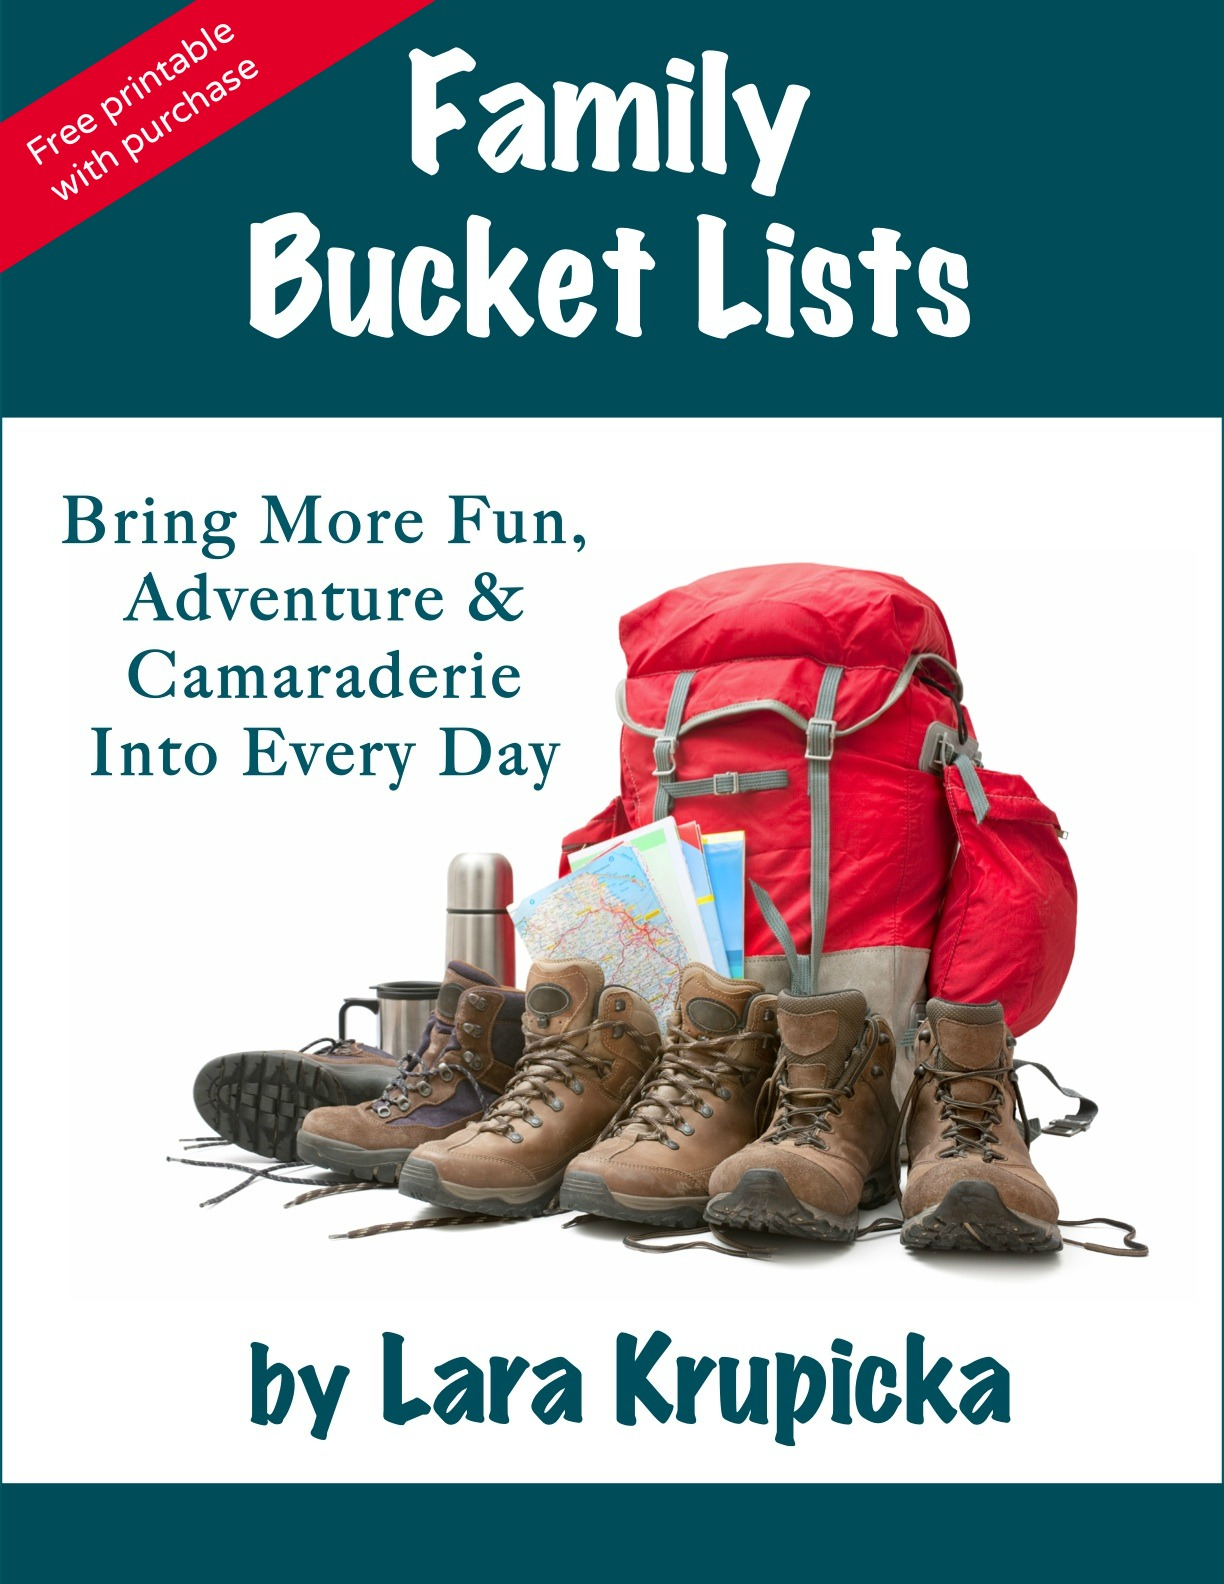 Family Bucket Lists Book